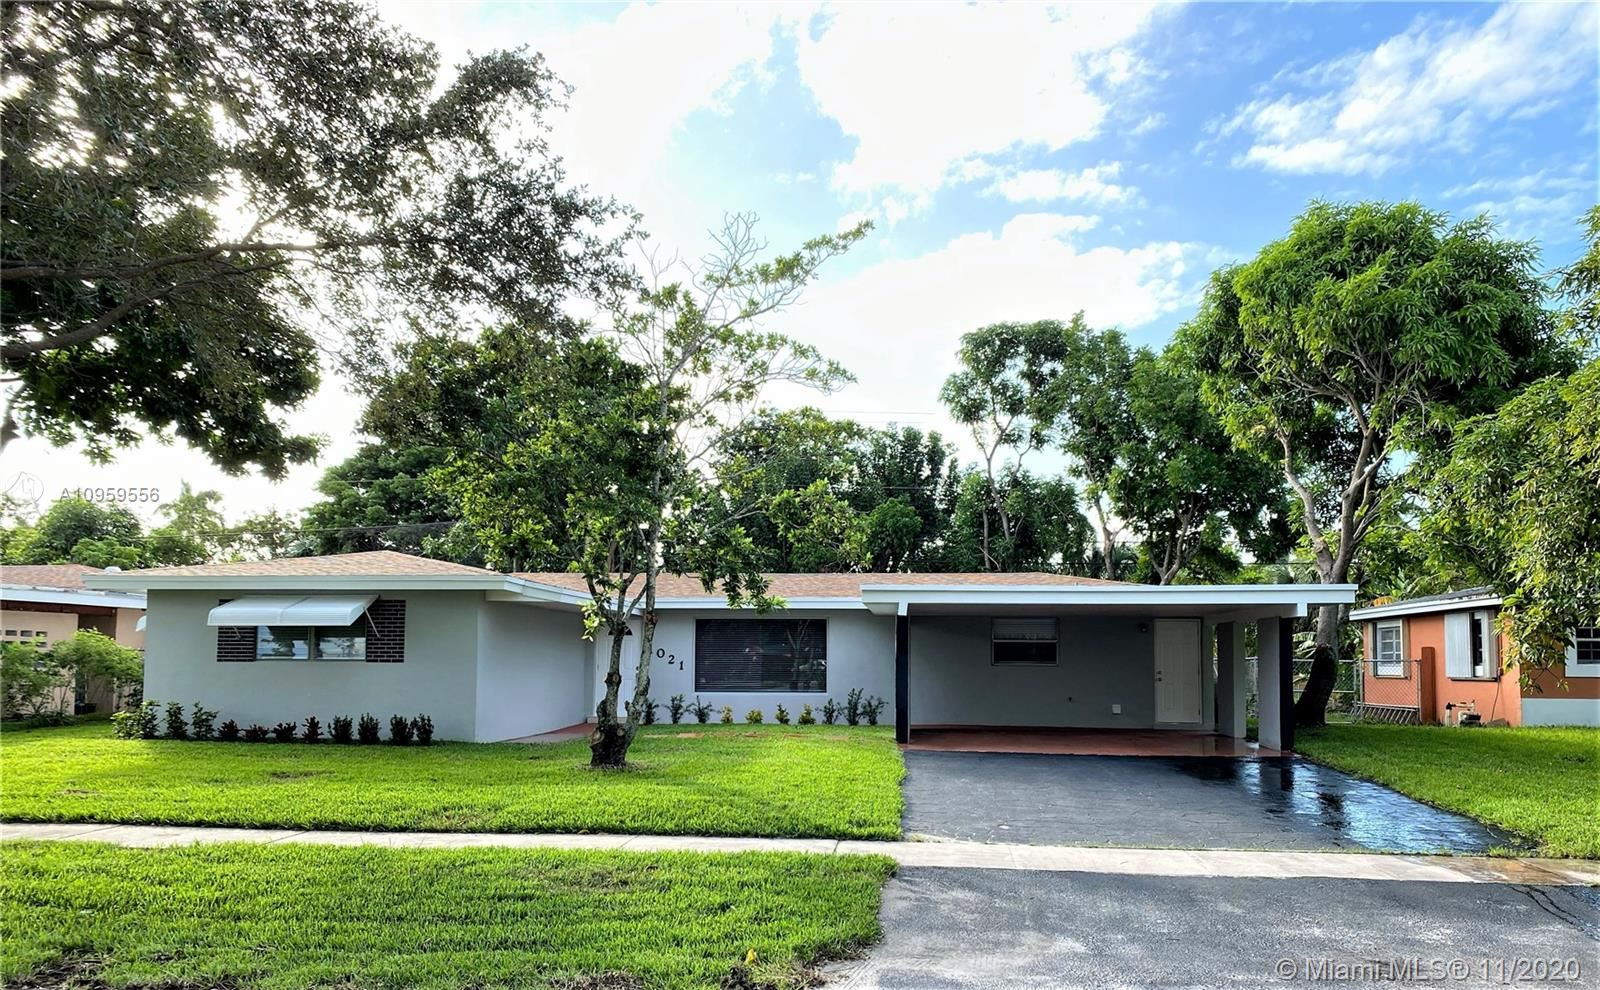 1021 SW 39th Ave, Fort Lauderdale, FL 33312 - #: A10959556